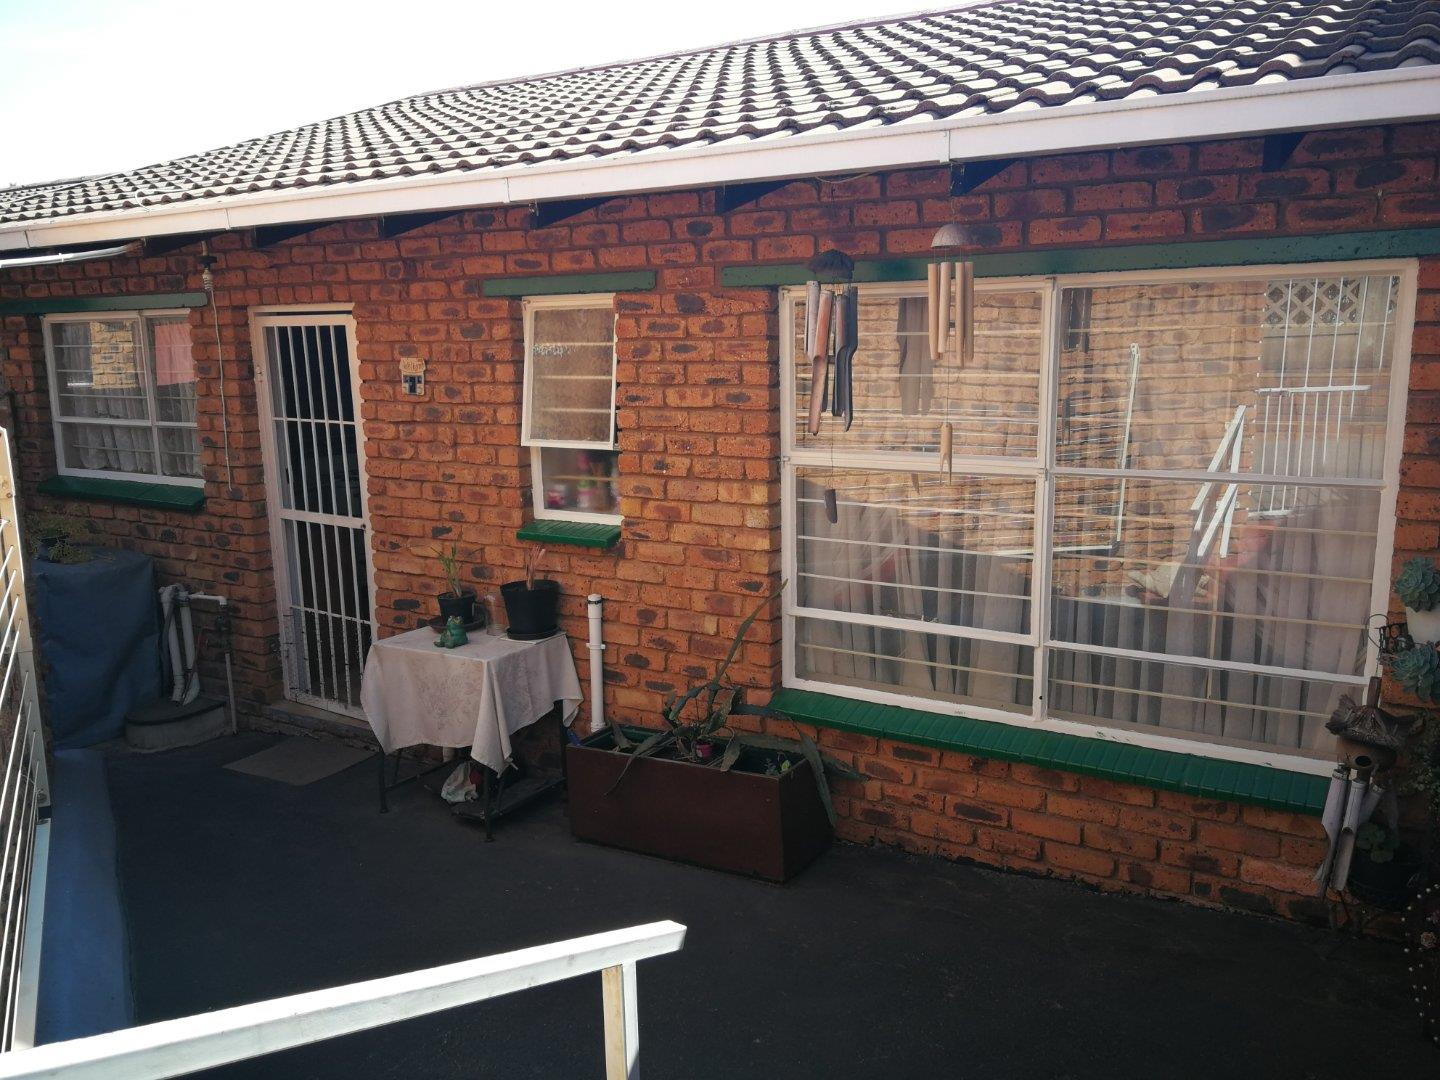 2 Bedroom  Townhouse for Sale in Krugersdorp - Gauteng